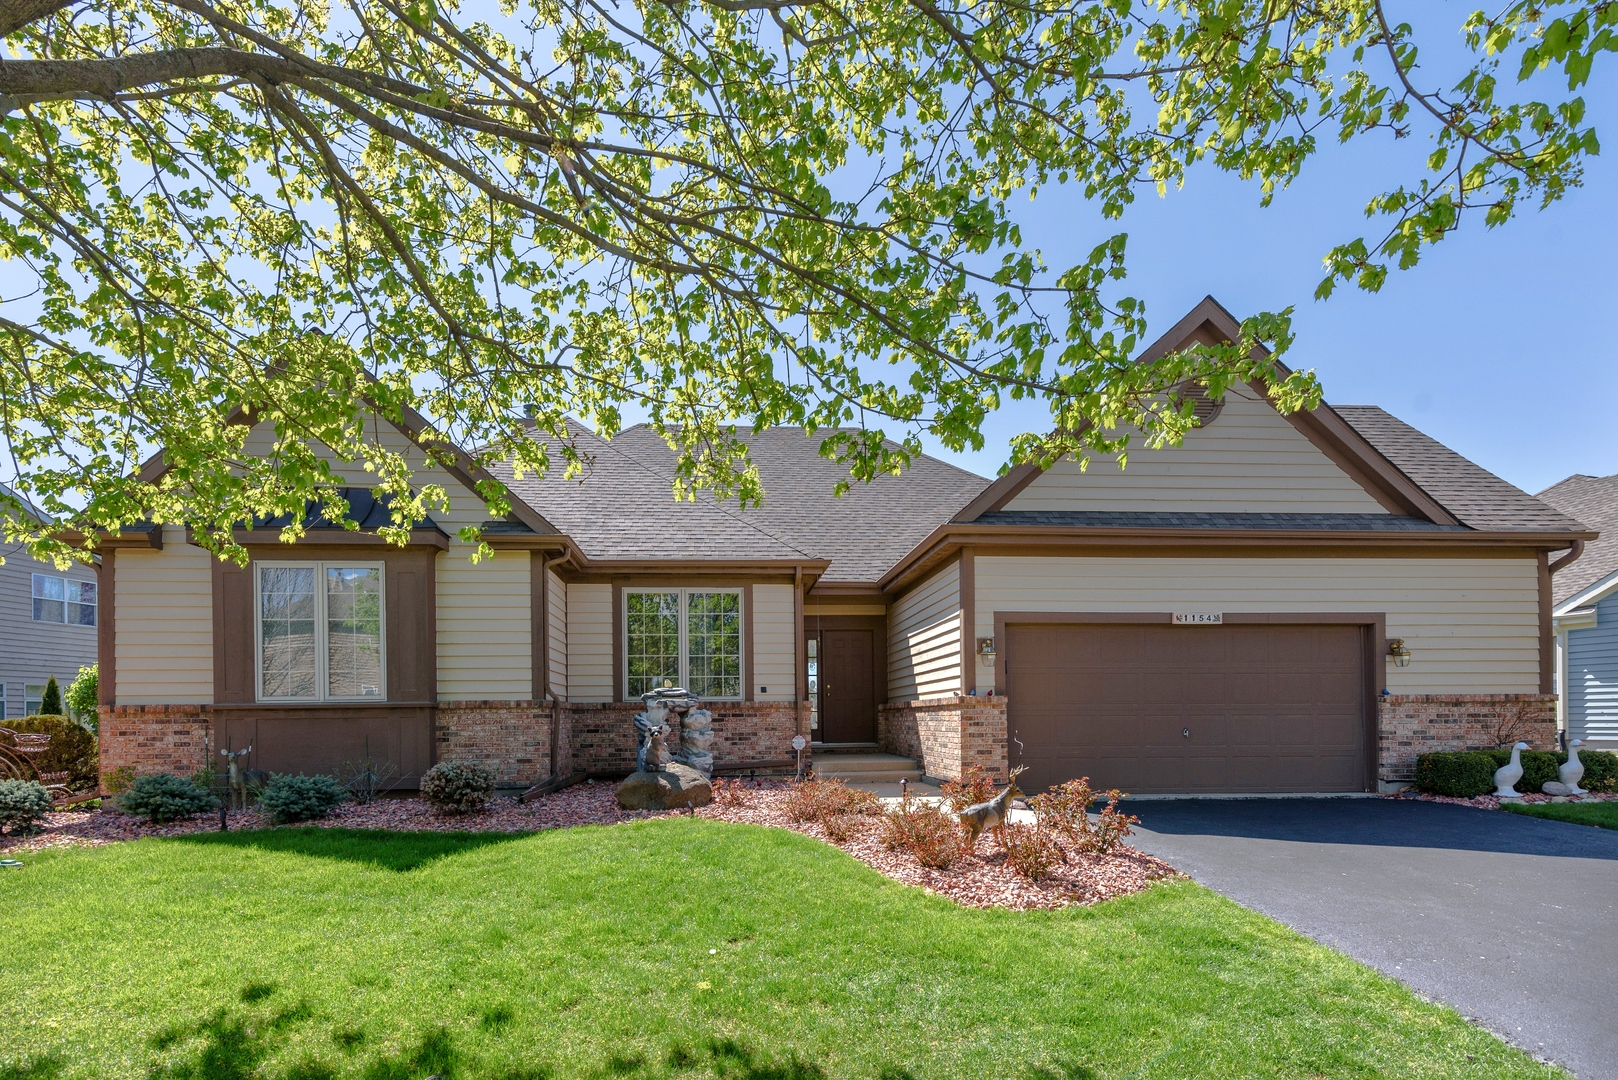 Photo for 1154 Ridgewood Circle, Lake In The Hills, IL 60156 (MLS # 10714368)